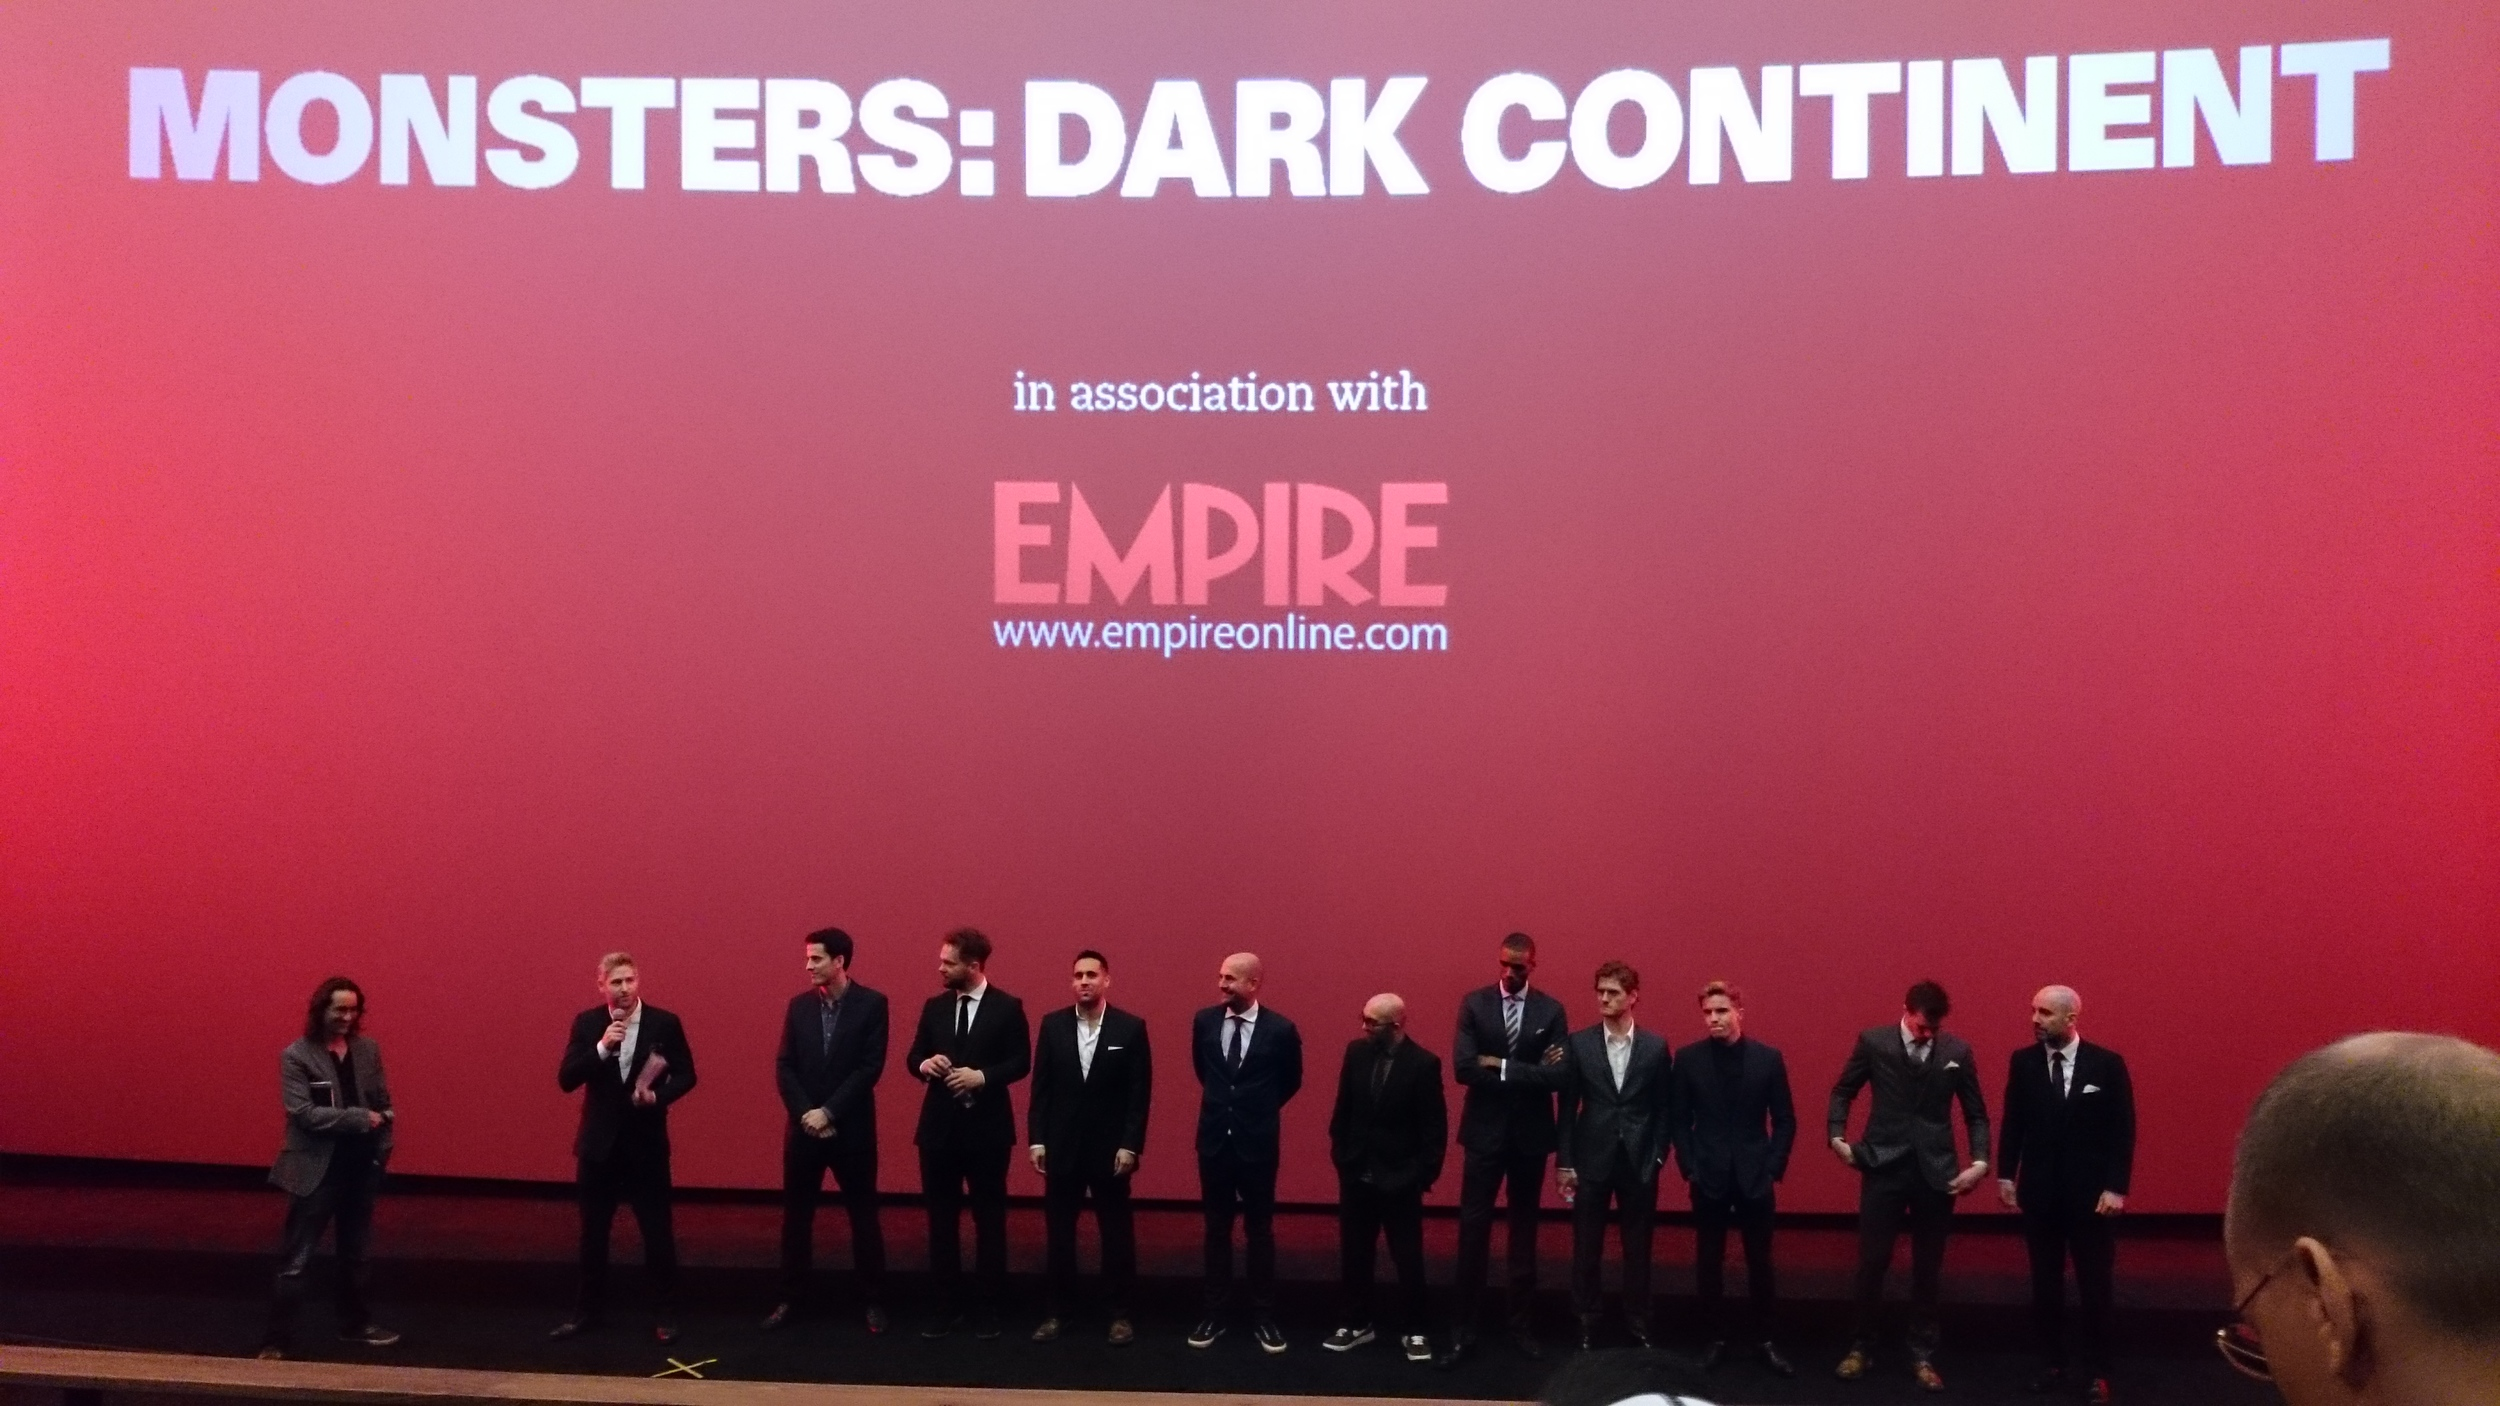 It's that Dan Jolin out of Empire Magazine with Tom Green and the Monsters: Dark Continent team